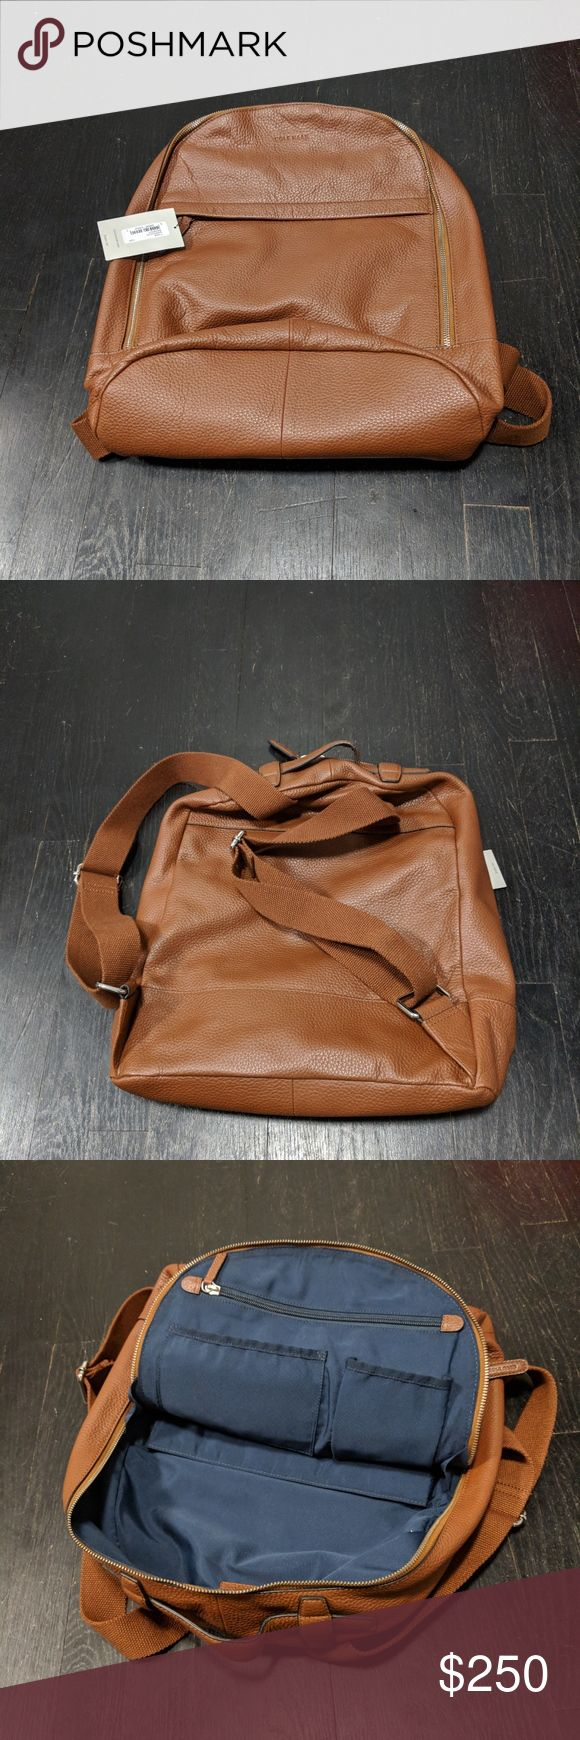 """Cole Haan Women's Barrington Backpack (Taken directly from the Cole Haan website)- Classic pebble leather gets a distinctly modern update with industrial details such as exposed zippers, lobster clasps, and webbing straps. Ideal for commuting and even weekends away, it's roomy enough for a """"15 to """"17 laptop or a tablet and gym clothes. A front pocket offers easy access, while adjustable straps and inside zip pockets make this bag both organized and user-friendly.   - 12"""" L x 18 H x 5"""" D…"""